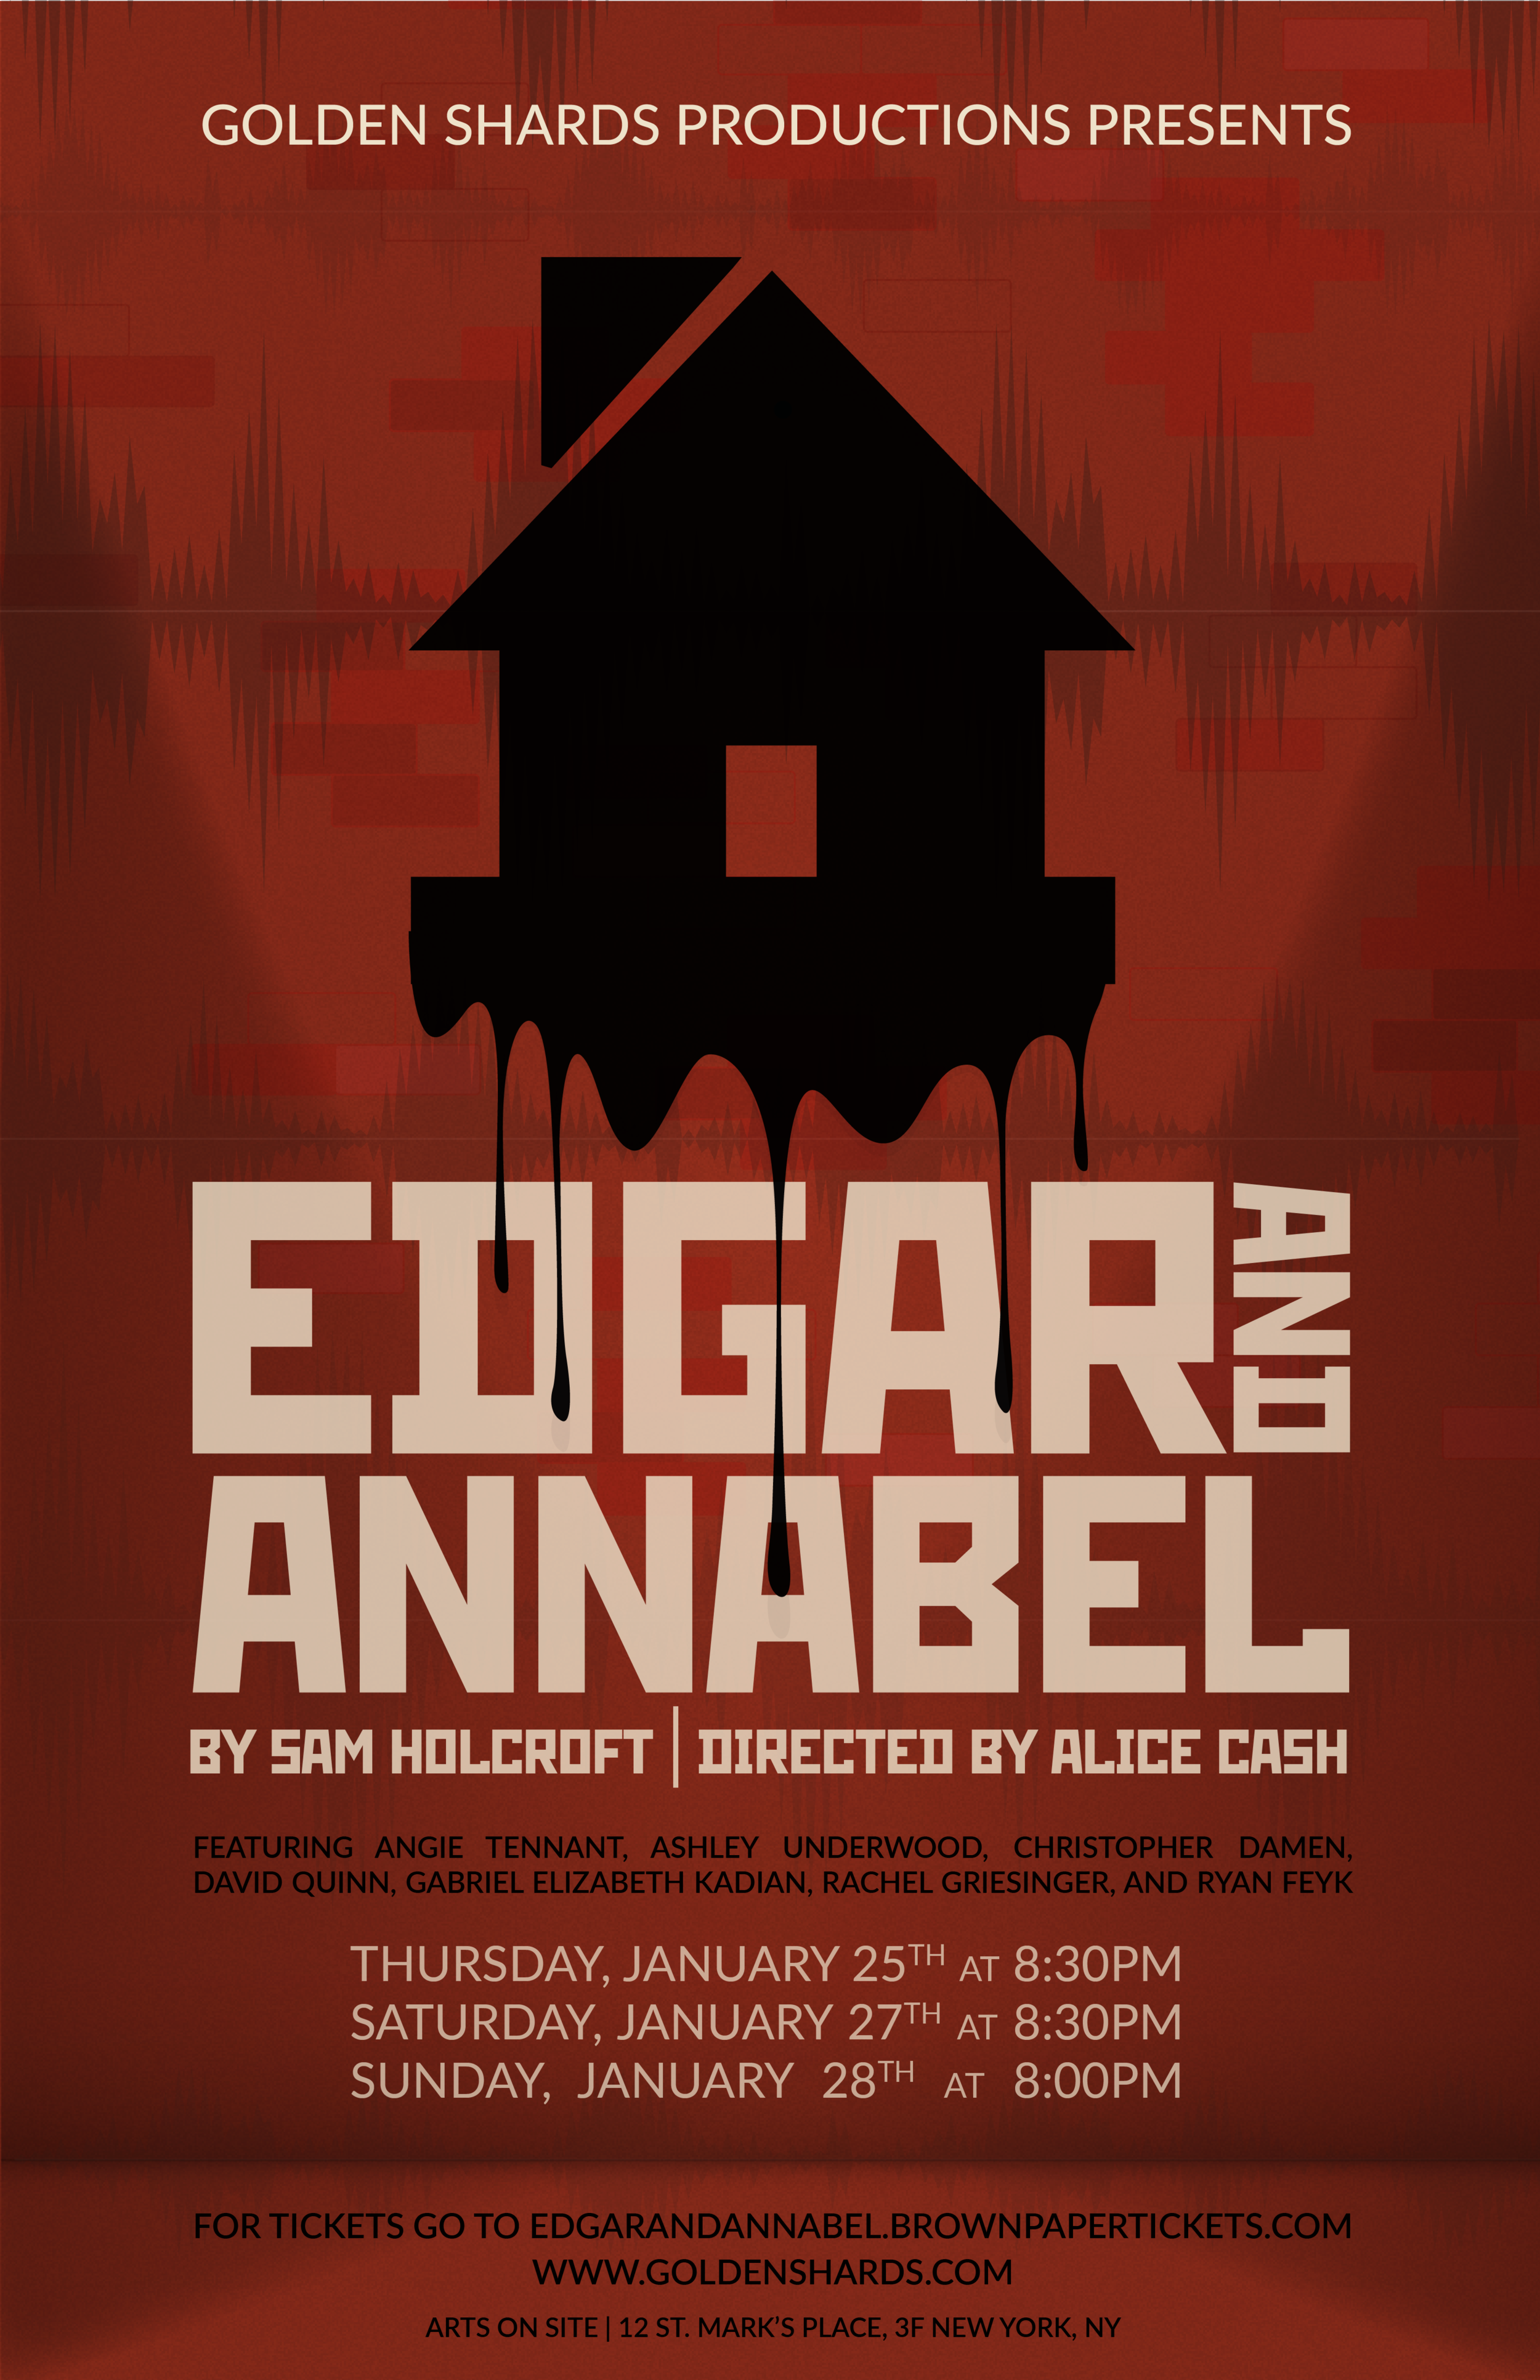 Edgar And Annabel - Theatre Poster, Golden Shards Productions